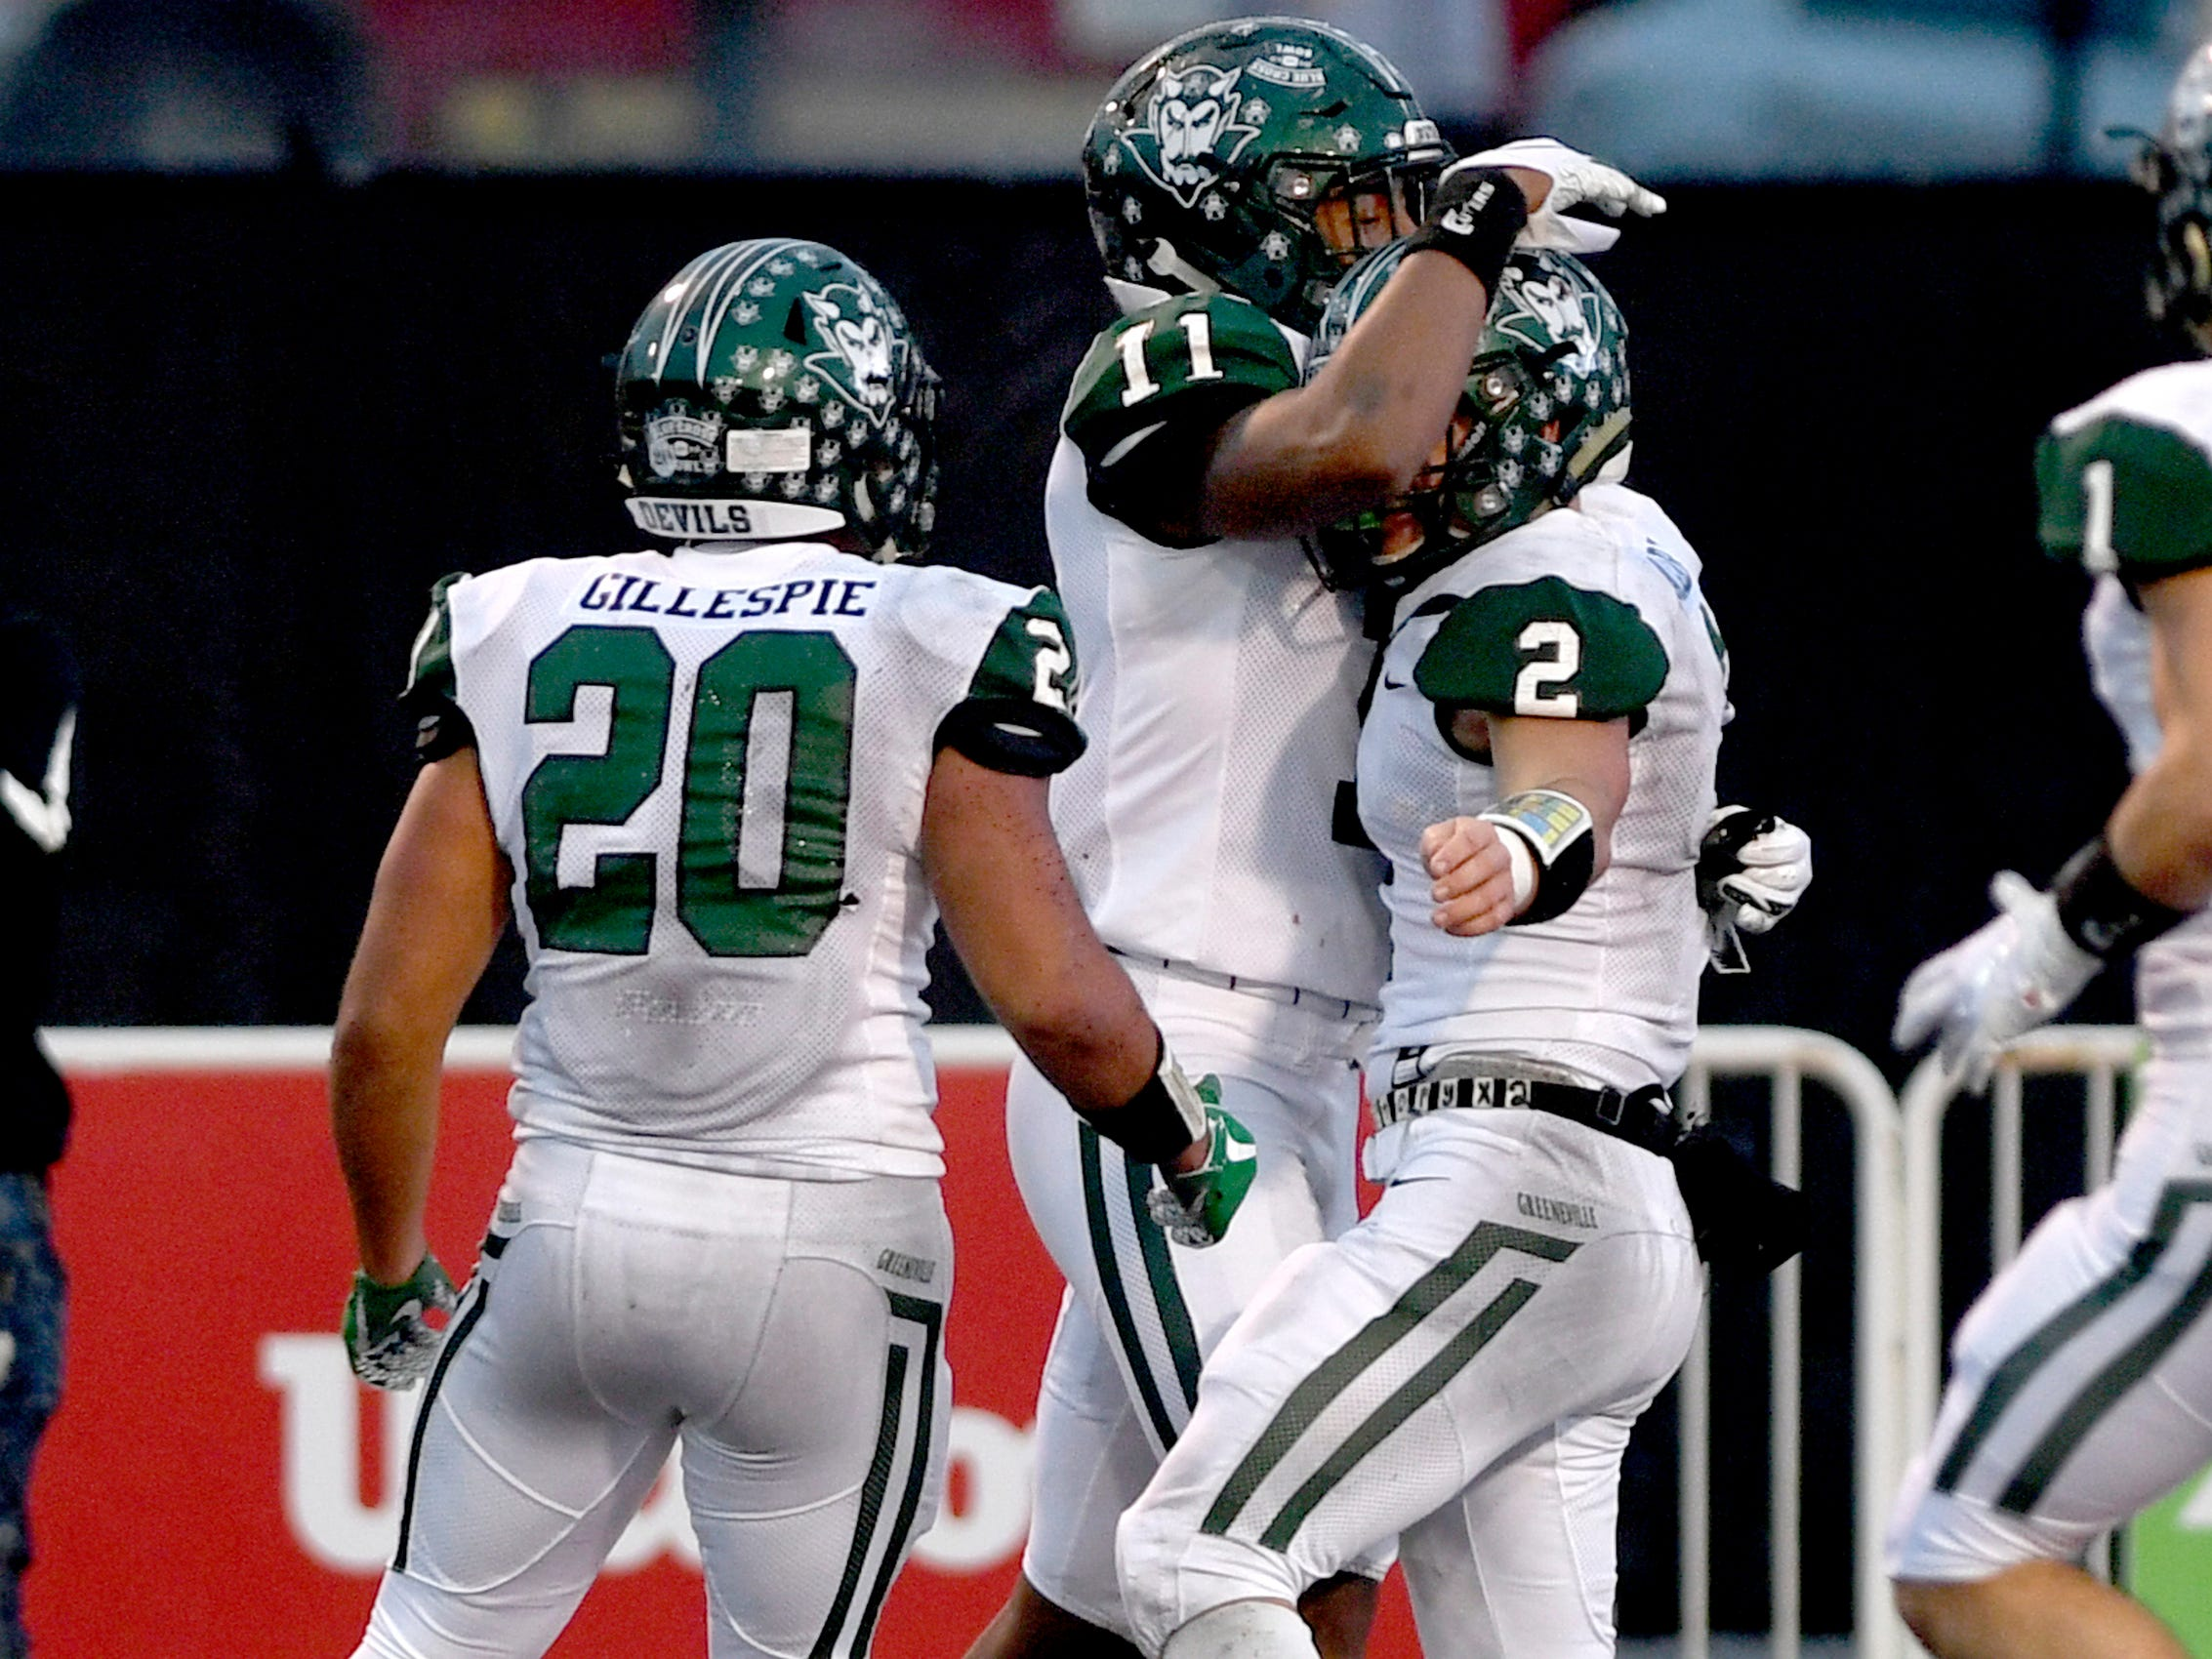 Greeneville's Jaevon Gillespie (20), Greeneville's Dorien Goddard (11) and  Greeneville's Cade Ballard (2) celebrate a touchdown made by Greeneville's Cade Ballard (2)  during the Class 4A BlueCross Bowl state championship game against Haywood Thursday, Nov. 29, 2018, at Tennessee Tech's Tucker Stadium in Cookeville, Tenn.